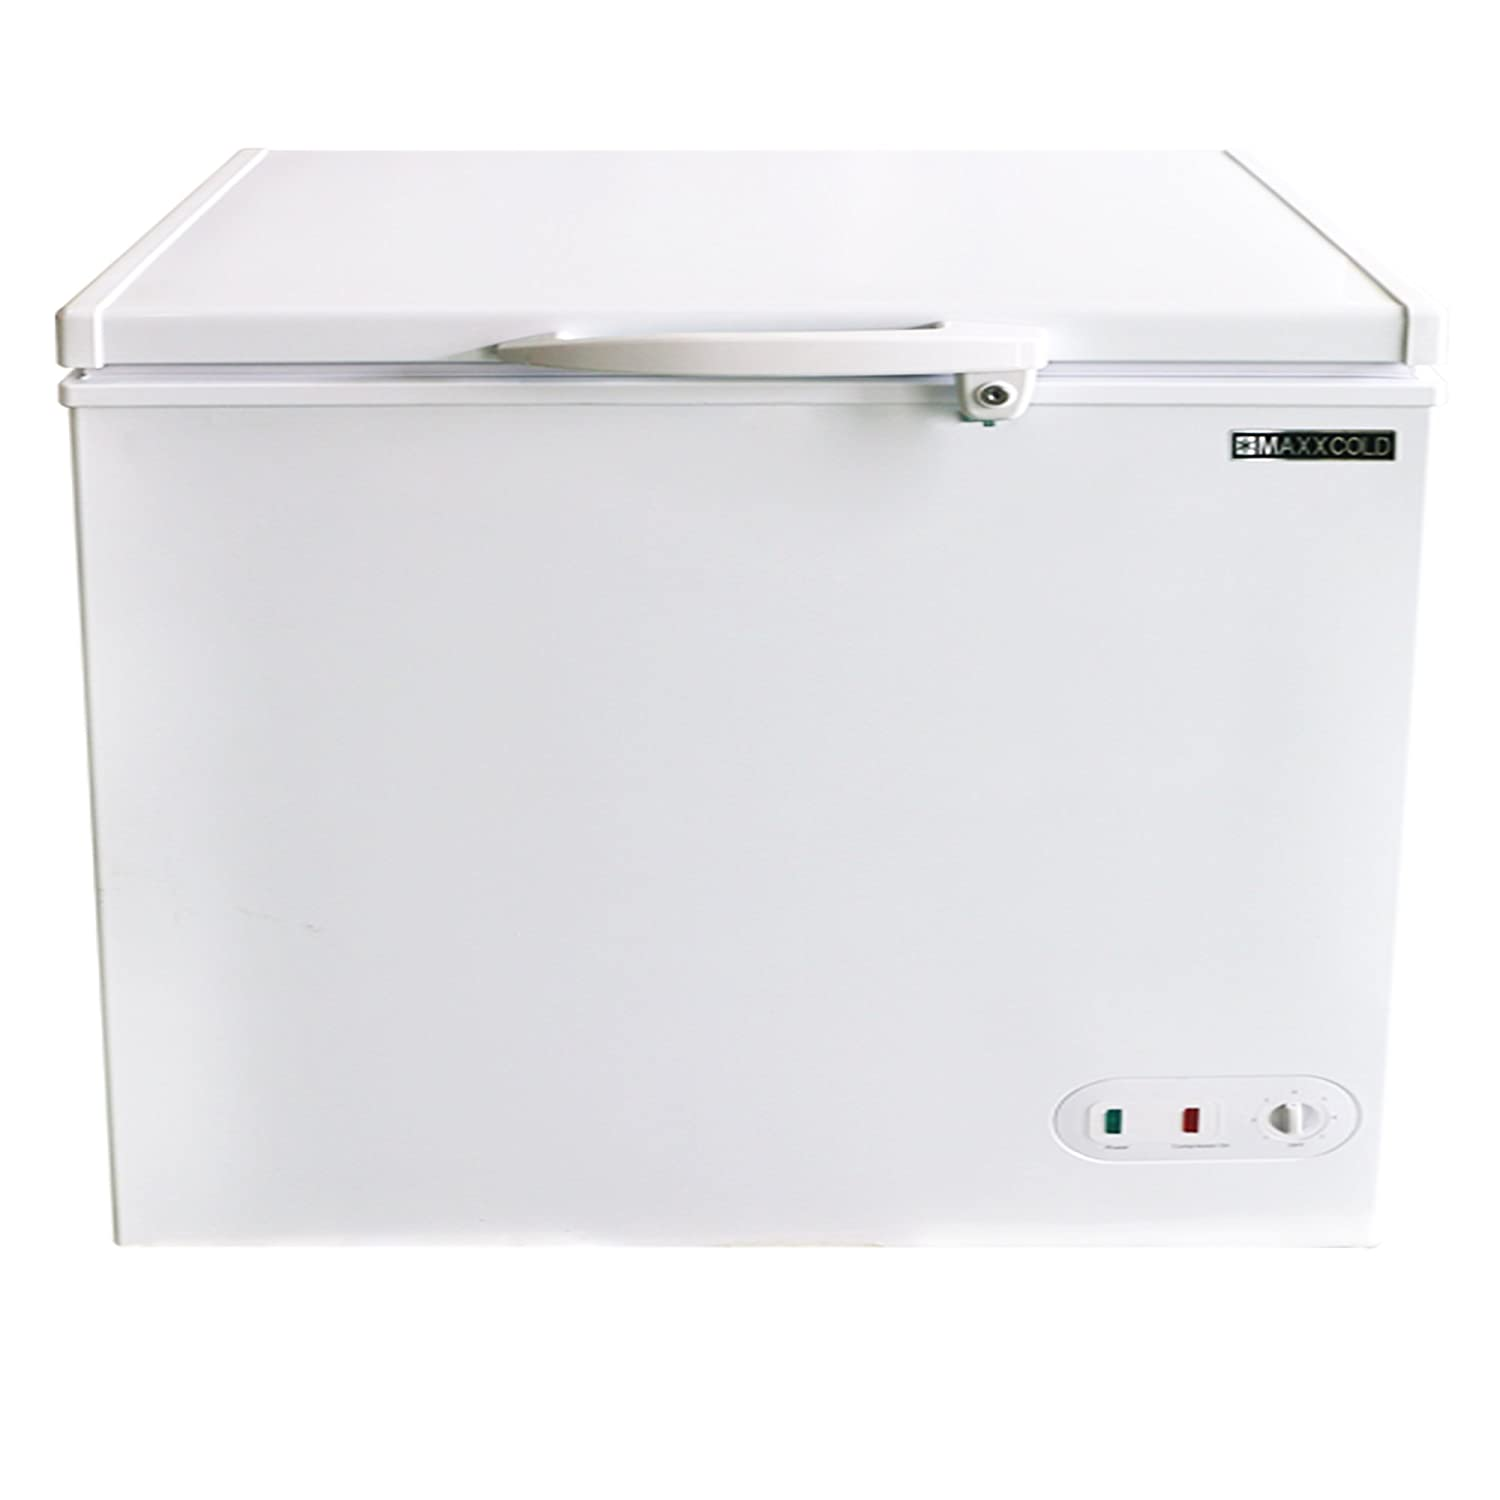 Maxx Cold 7 Cubic Feet 272 Liter Solid Hinged Top Sub Zero Commercial Chest Freezer with Locking Lid NSF Garage Ready Manual Defrost Keeps Frozen for 2 Days In Case of Power Outage, 37.8 In W, White